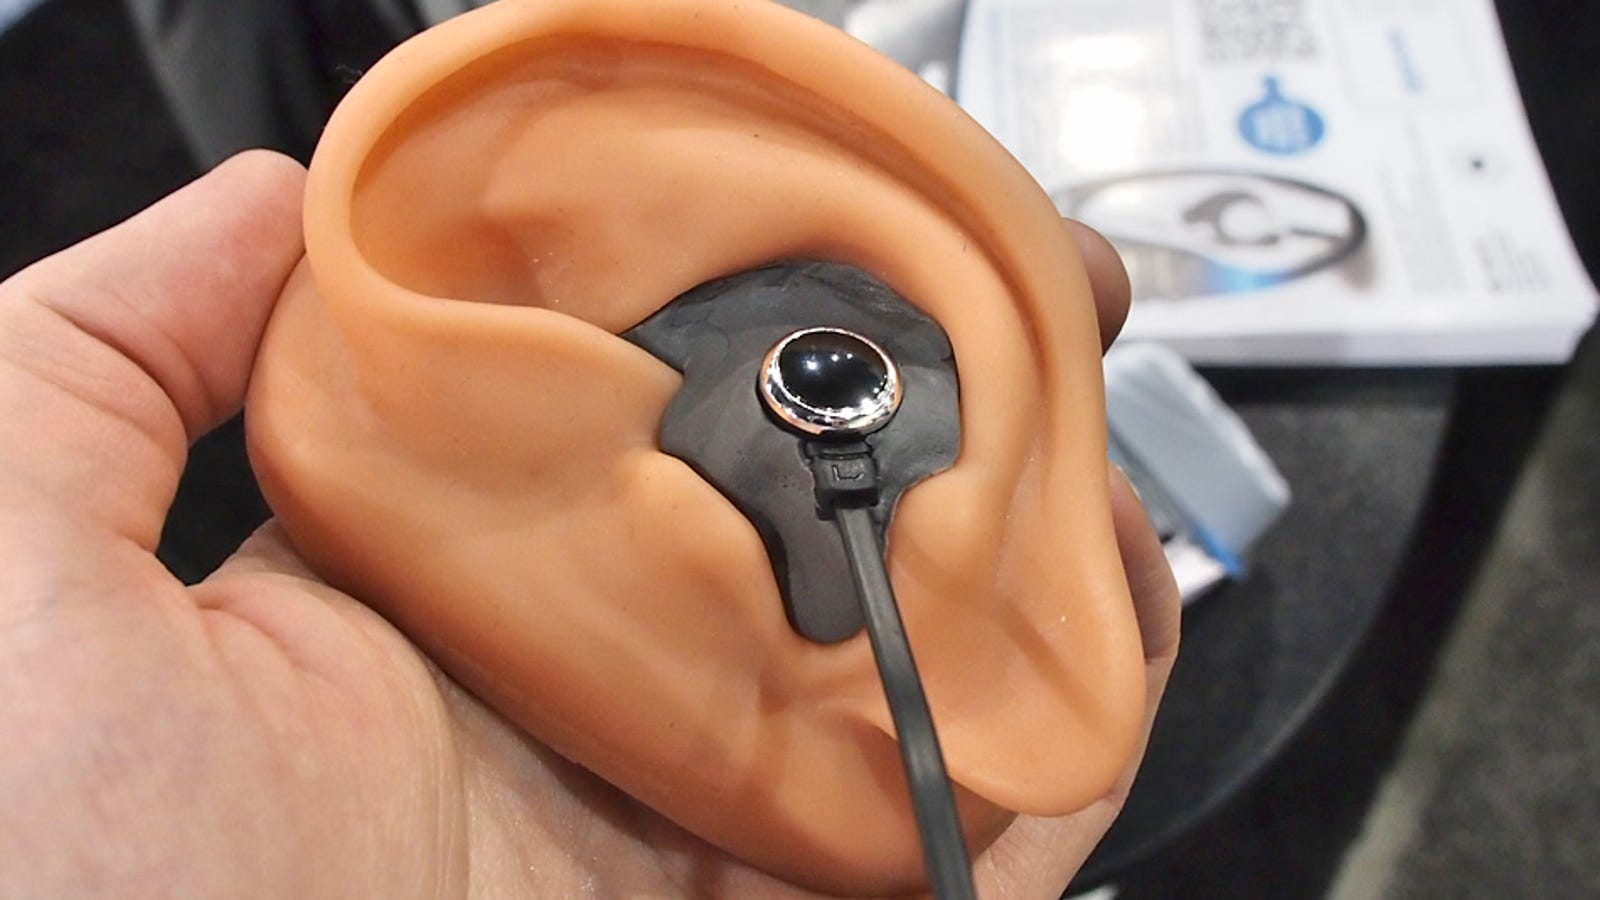 jlab earbuds with case - Sharkfin Promises Custom-Fitted Earbuds For Just $5